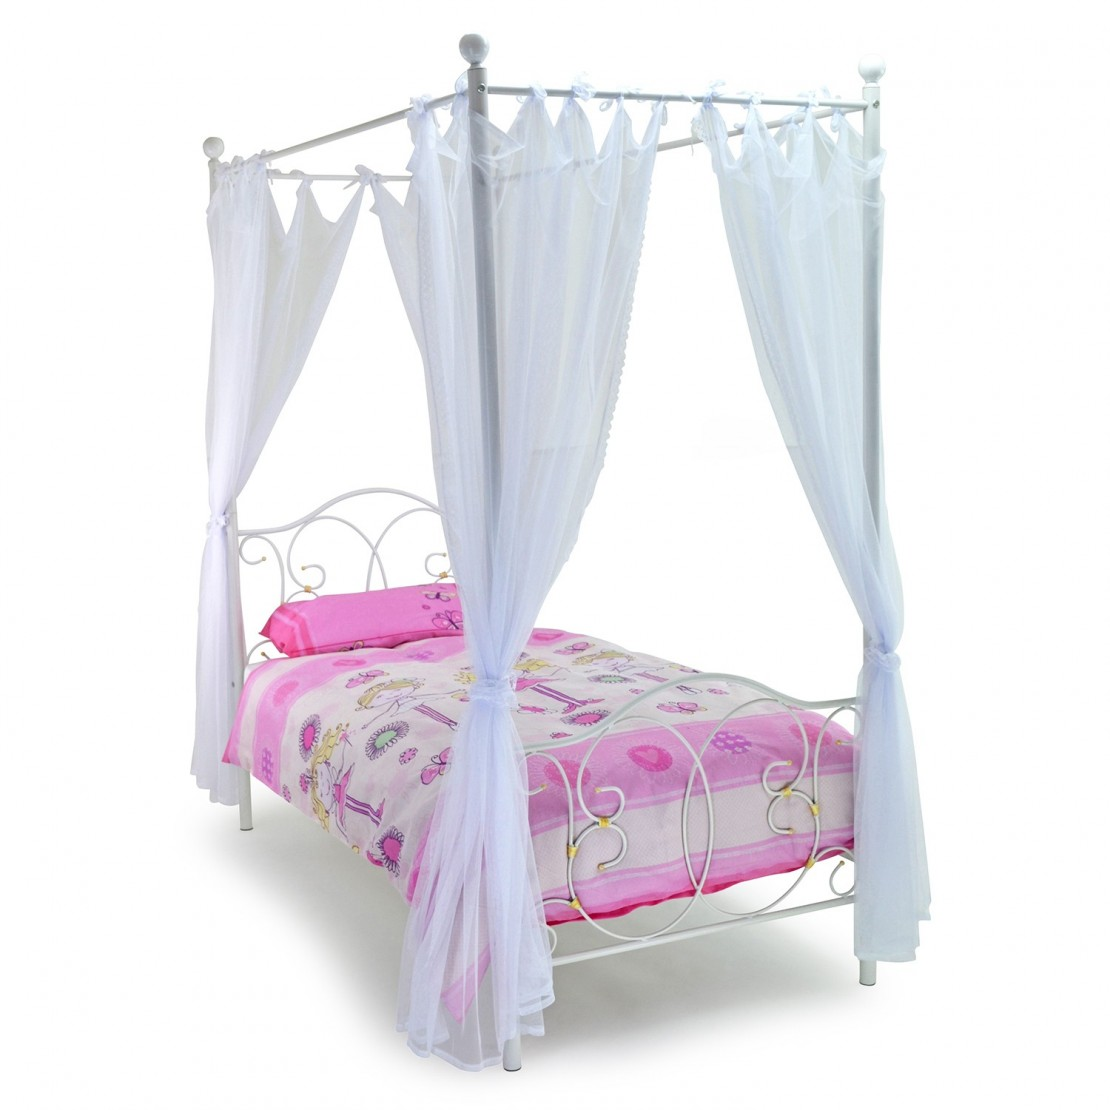 /_images/product-photos/metal-beds-ballet-four-poster-inc-drapes-a.jpg